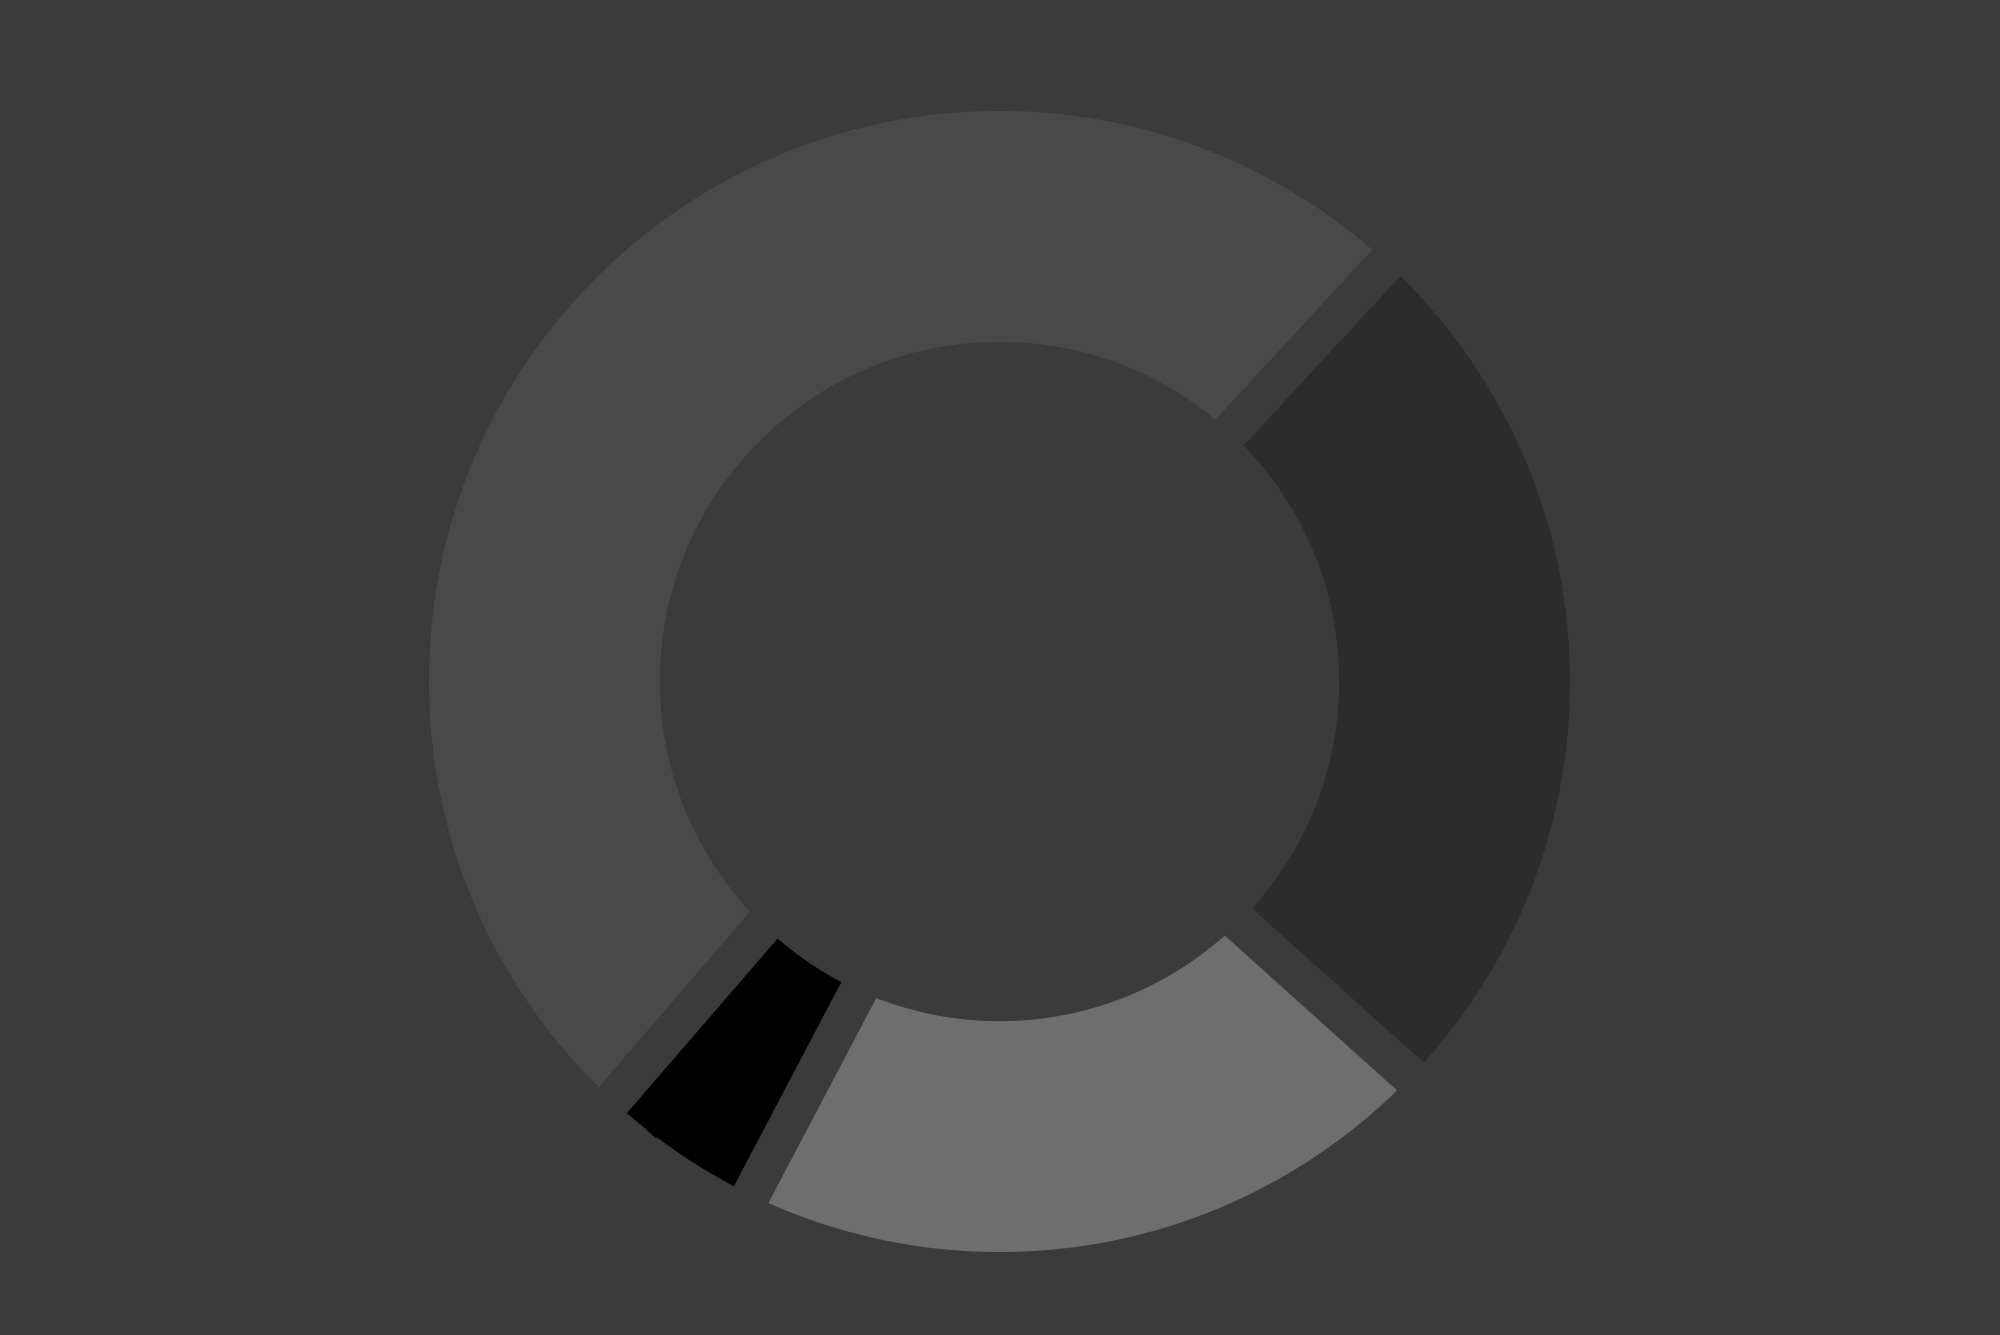 Stats picture - a light grey circle with a darker grey background